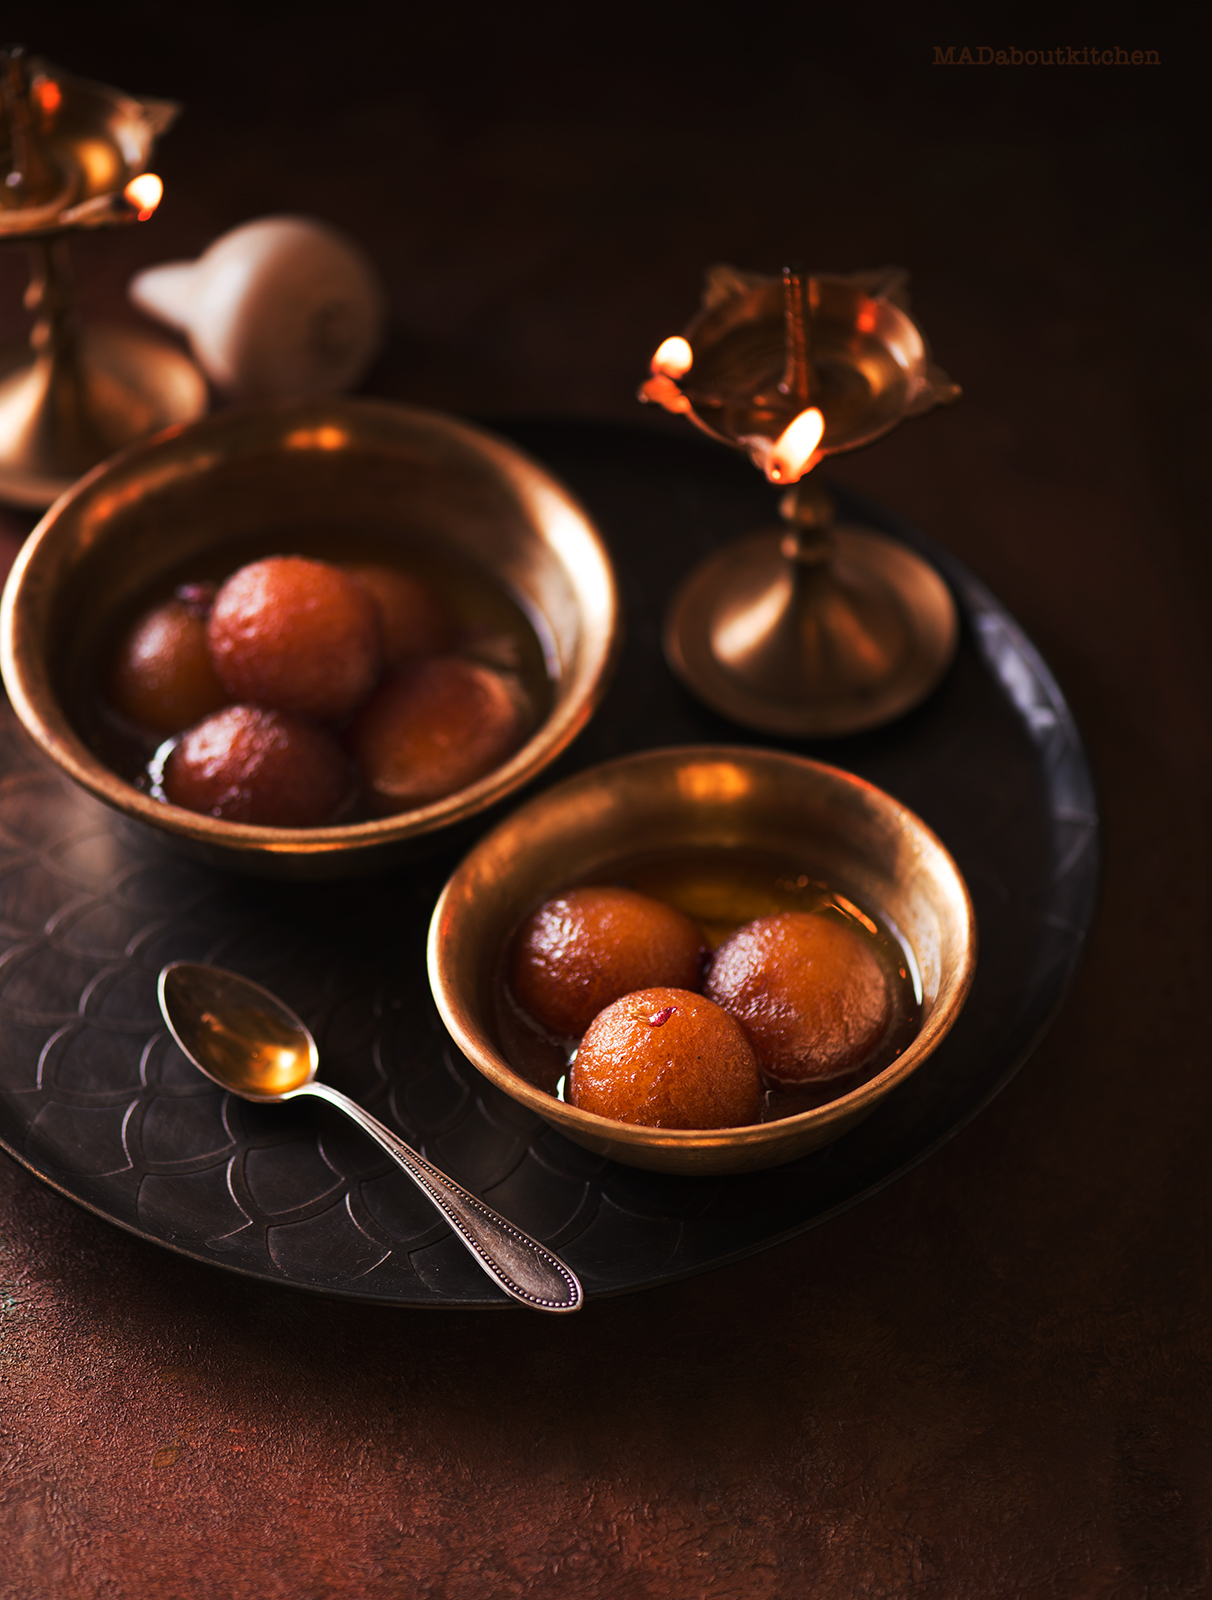 Gulab Jamun, are the most famous Indian Dessert that are deep fried balls made of Khova or reduced milk and soaked in sugar syrup till it is soft and melts in your mouth.